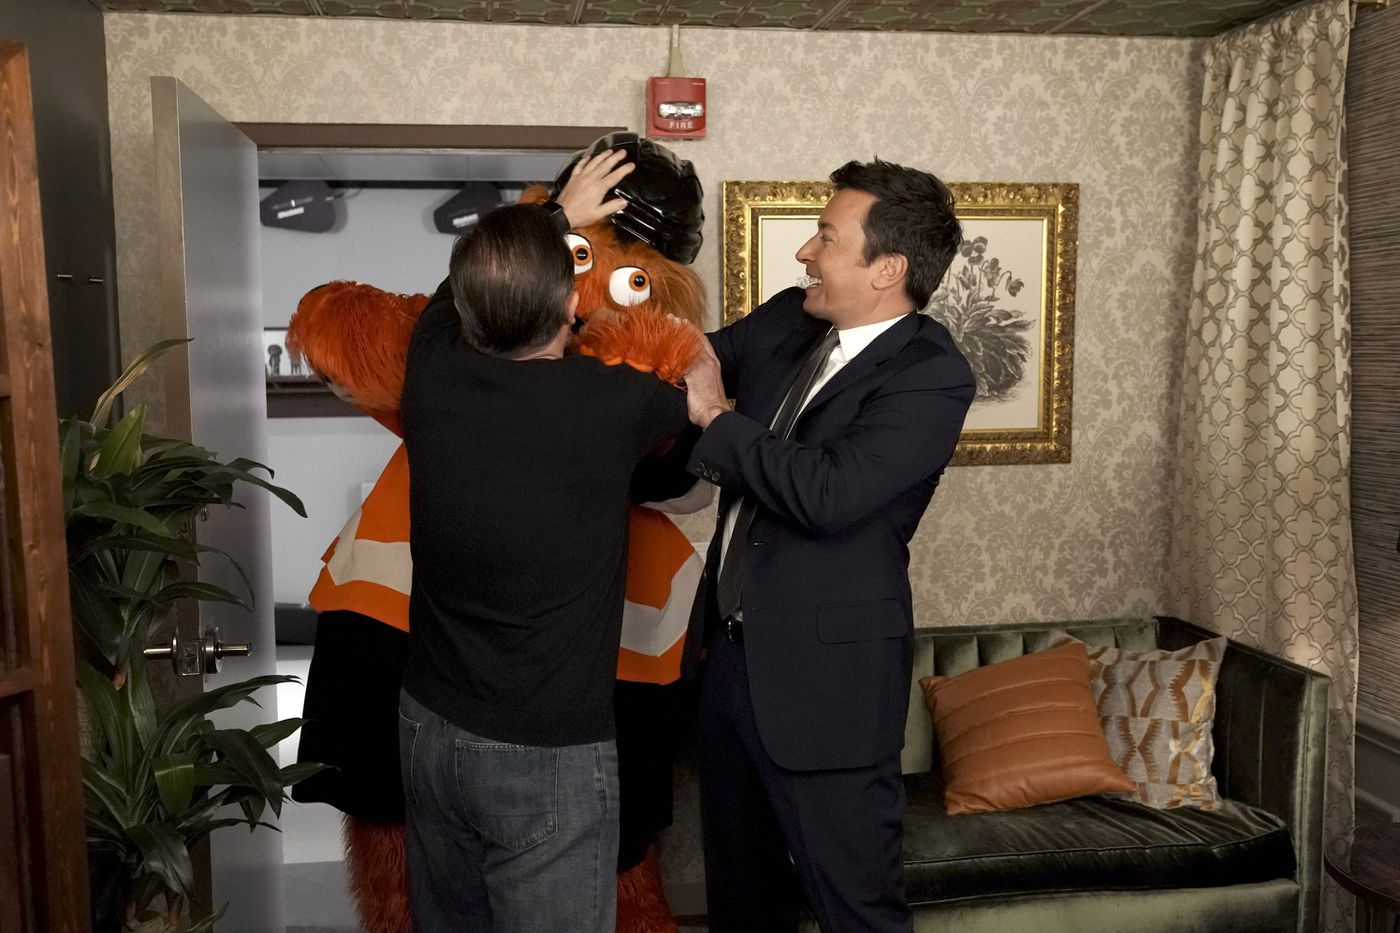 Gritty makes late-night television debut on the 'Tonight Show with Jimmy Fallon'